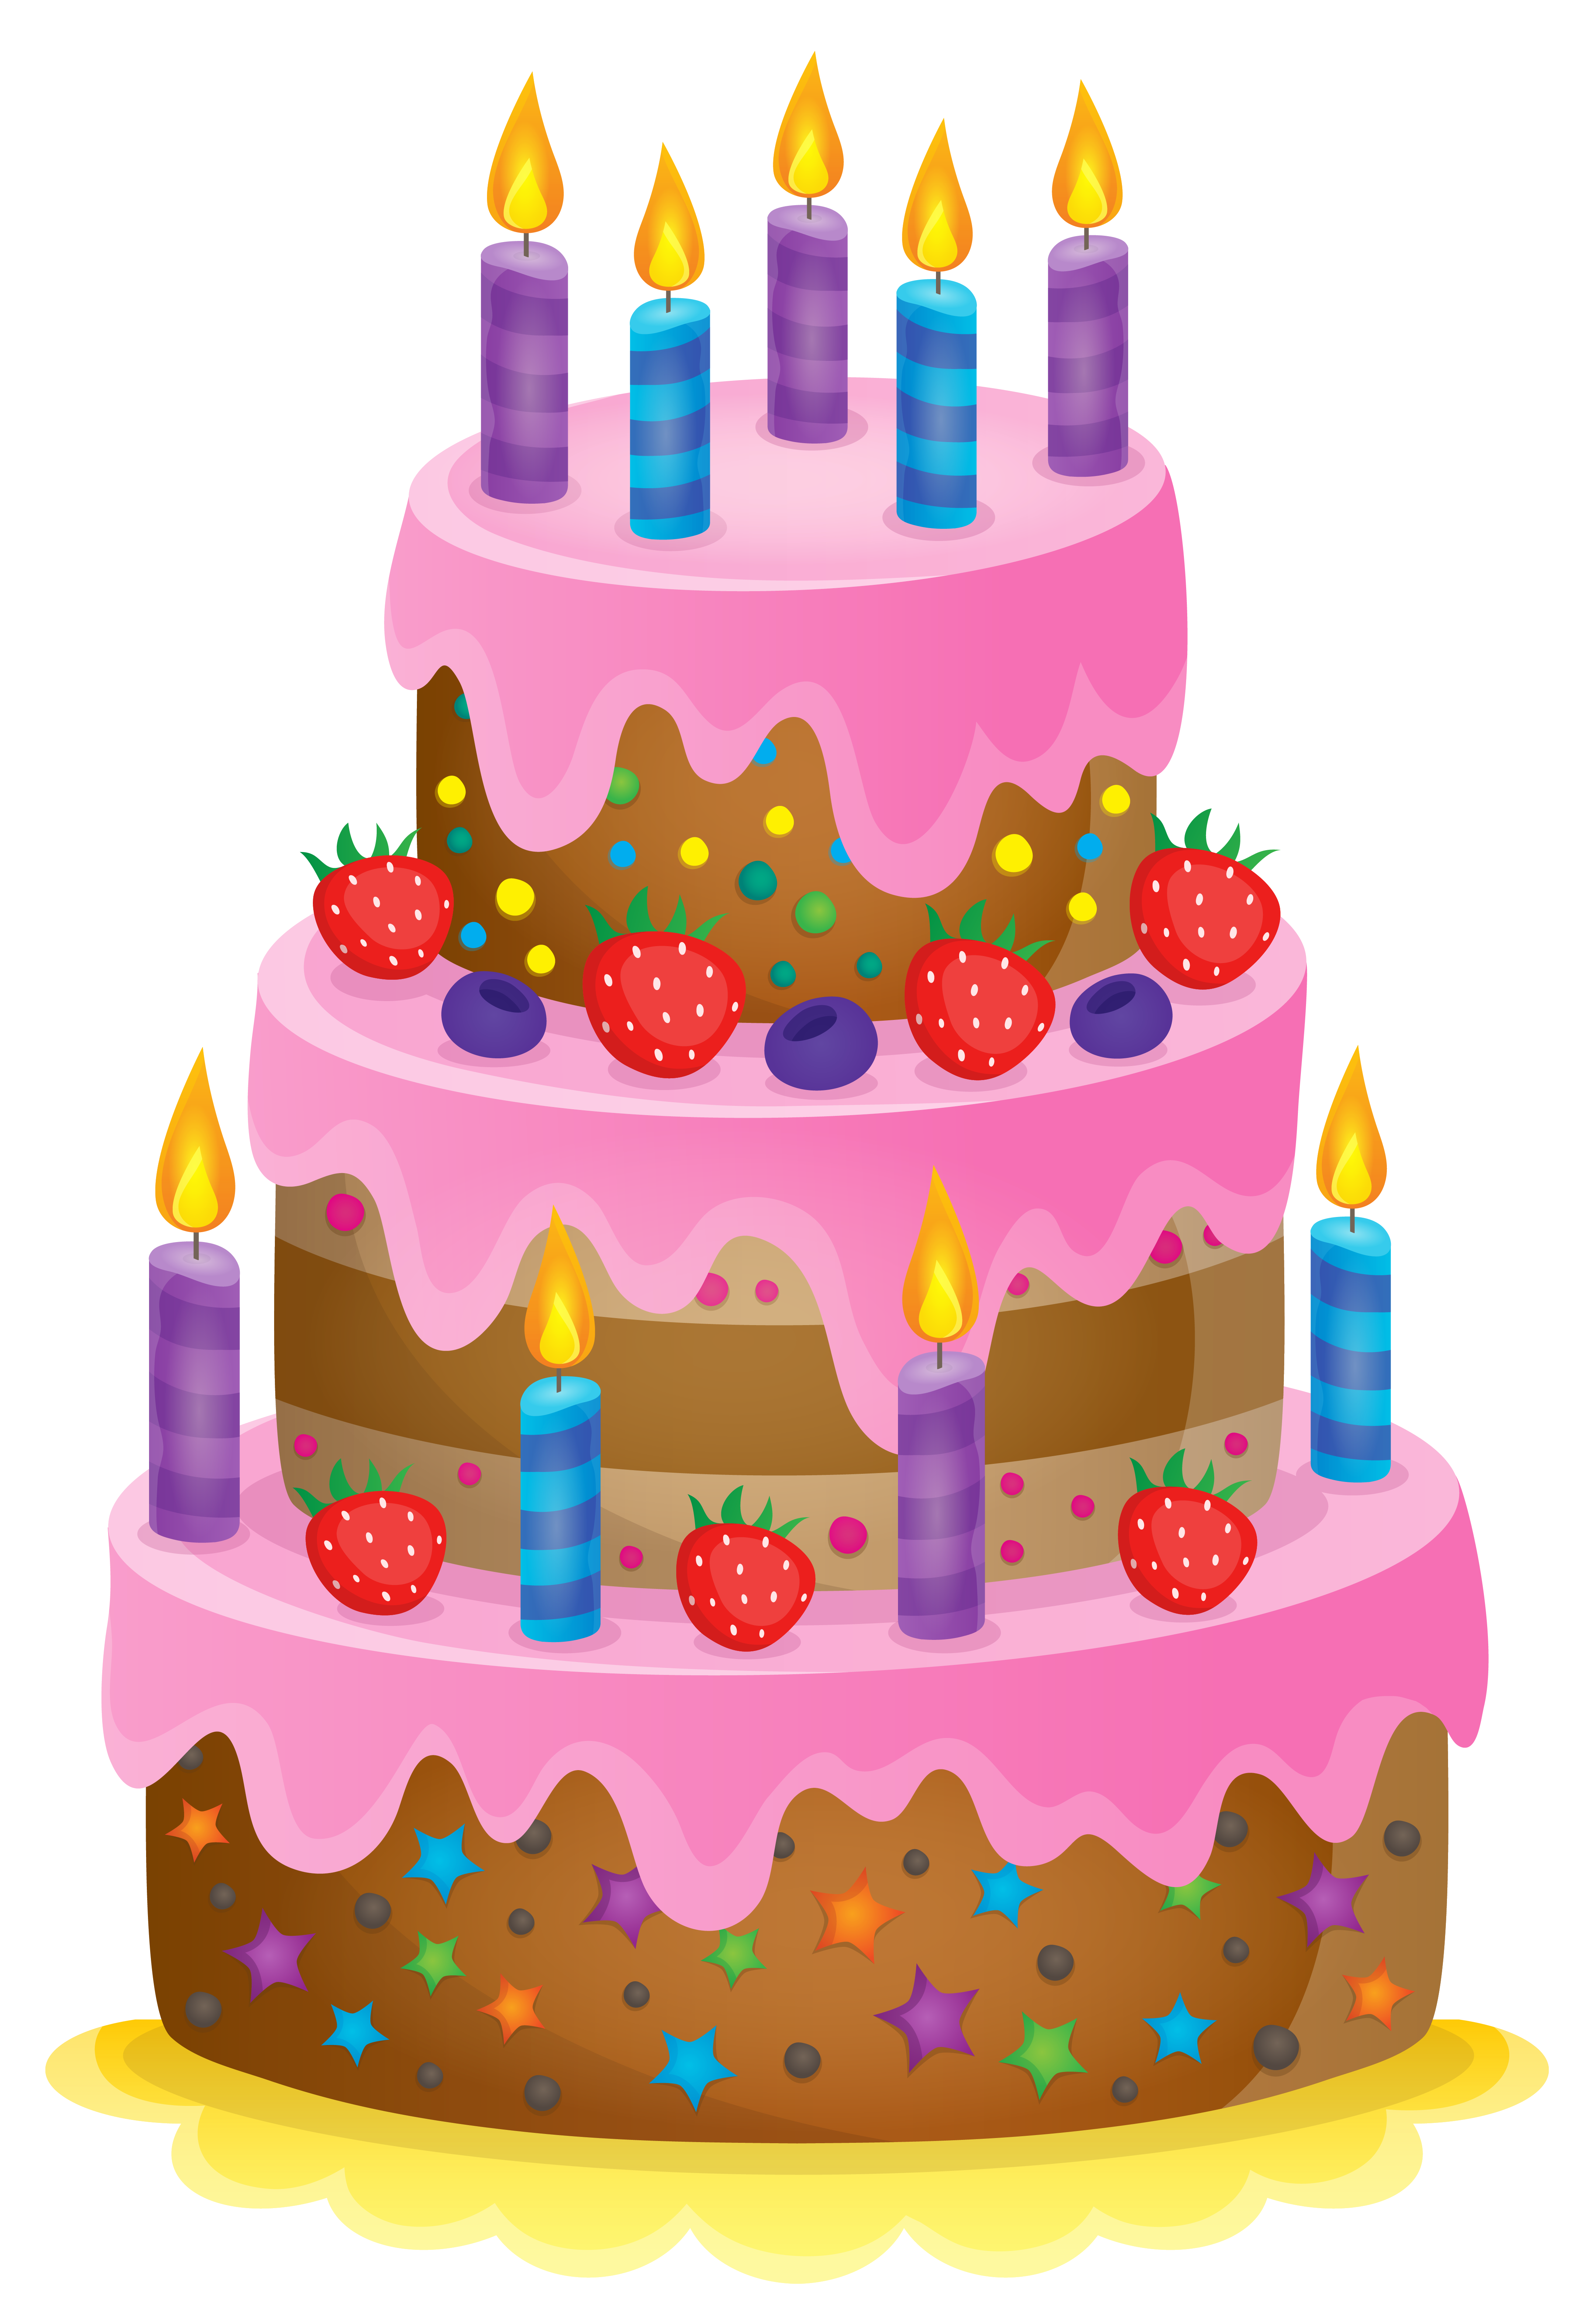 Snake clipart birthday. Cute cake png image